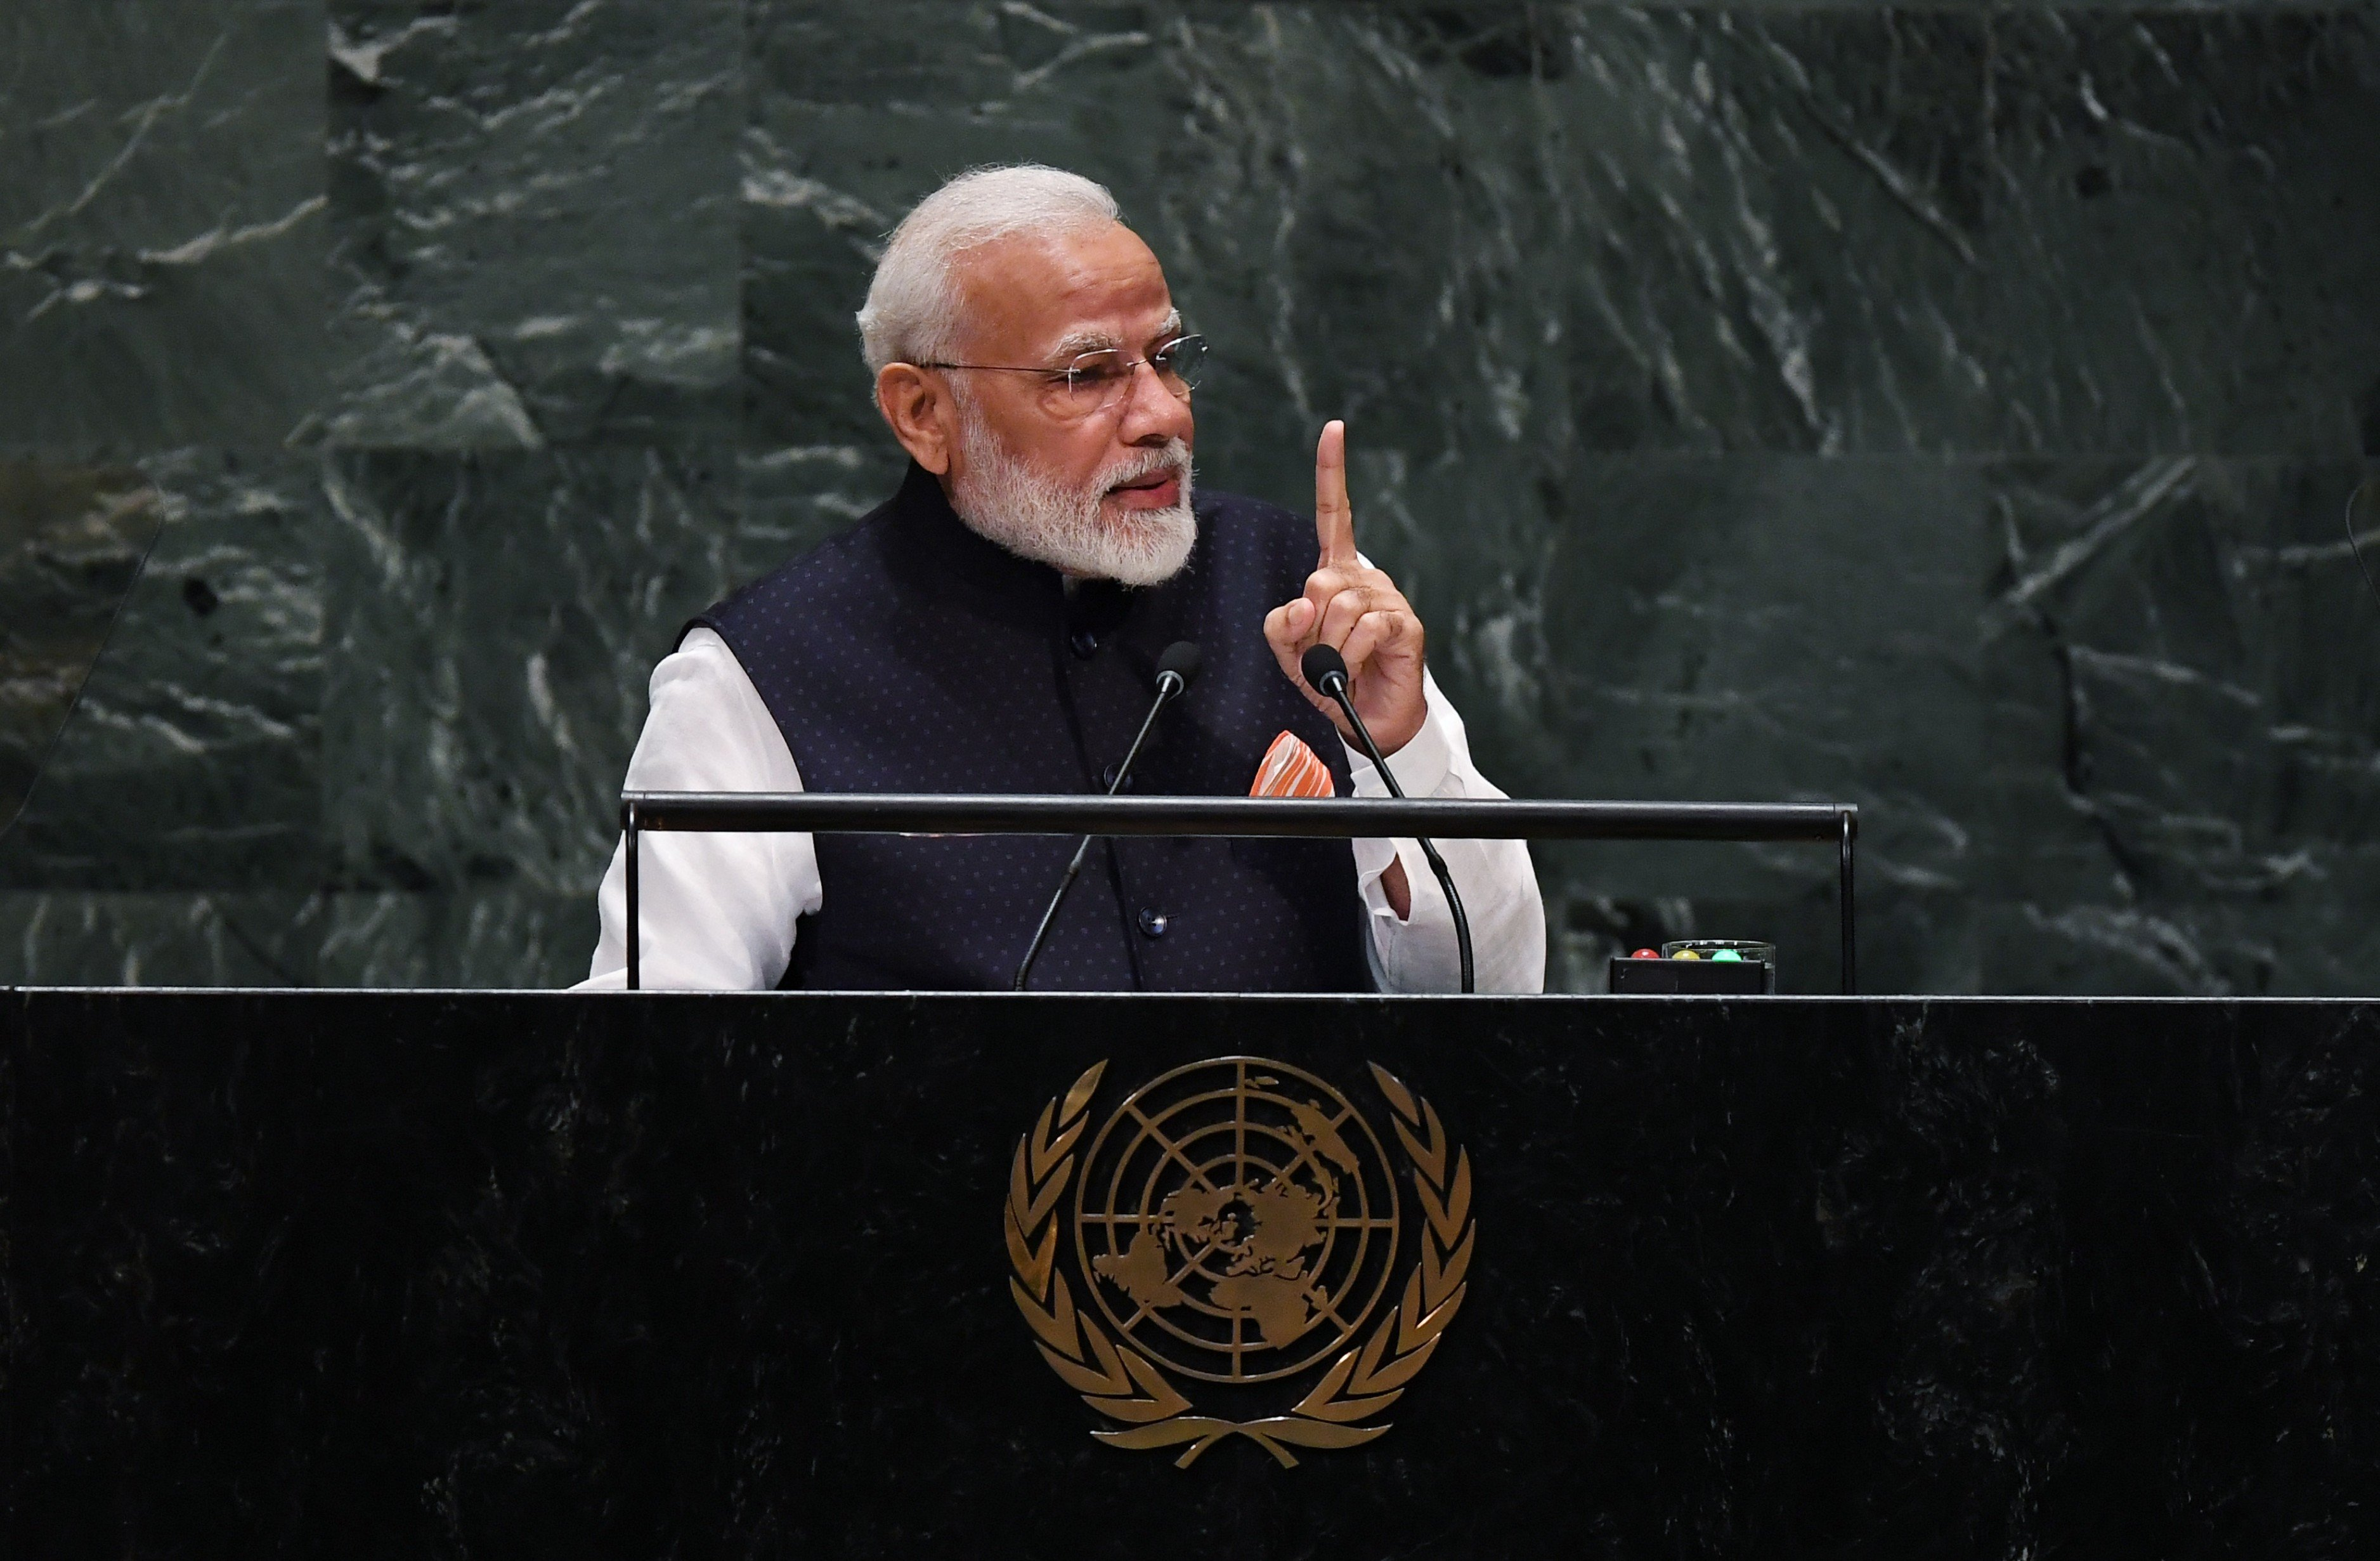 Prime Minister Narendra Modi addressing the UN General Assembly. Photo courtesy: Twitter/@PIB_India